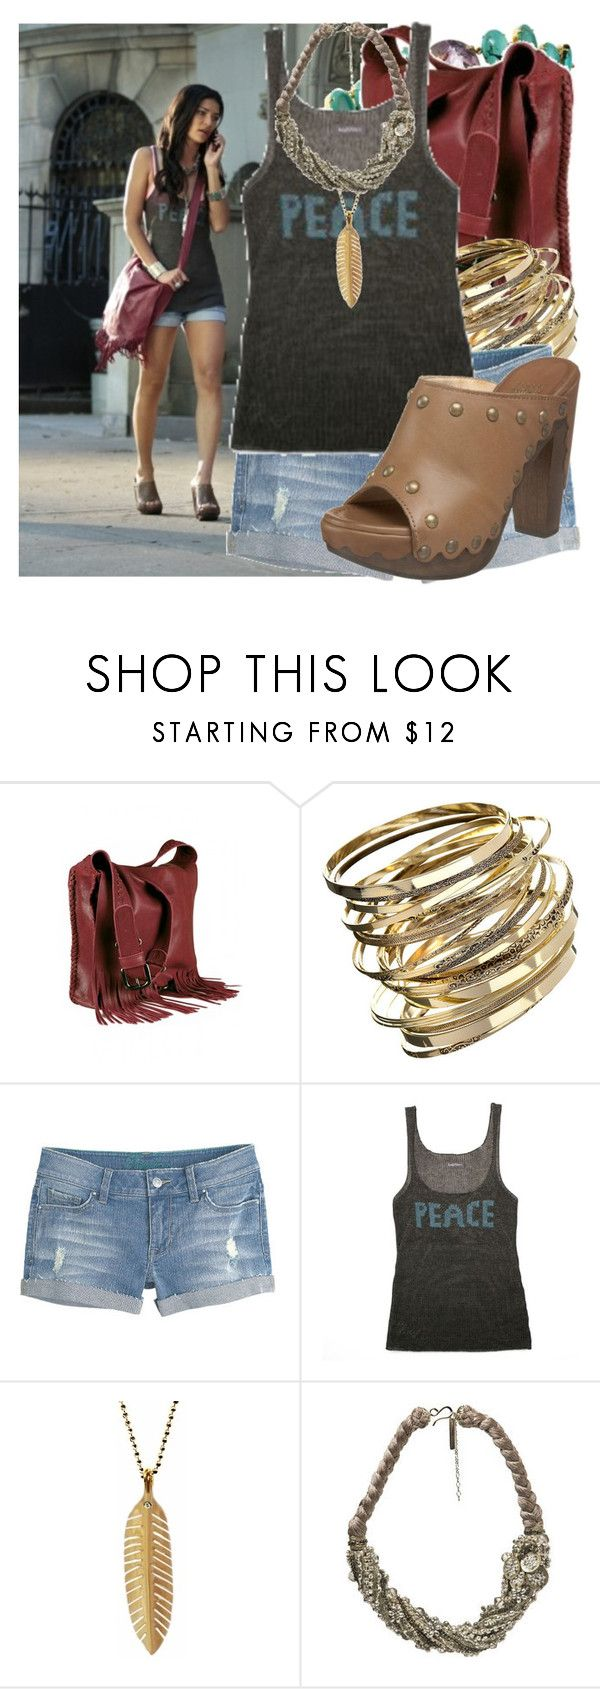 I just wanted to tell him that I'm here if he needs to talk.. I'm his friend and always will be. by valerieking on Polyvore featuring Zadig & Voltaire, Dorothy Perkins, Oscar de la Renta, Ariel Gordon, Stuart Weitzman, Episode, denim shorts, fringe bags, vanessa abrams and clogs